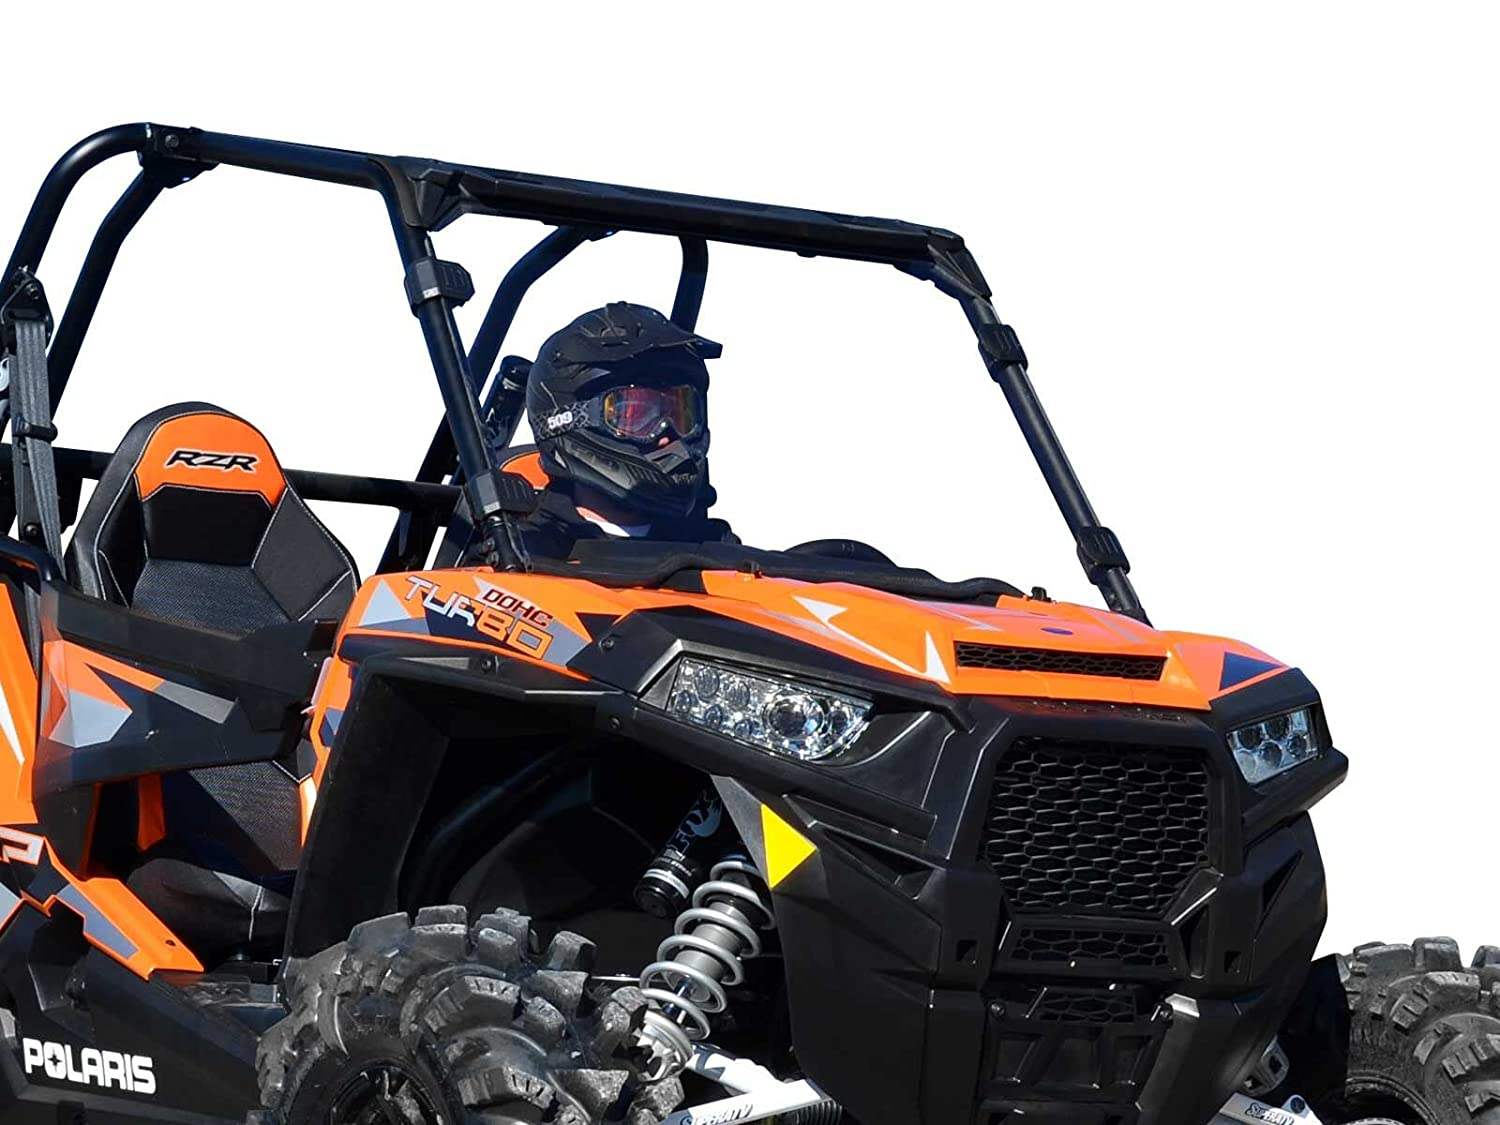 Amazon.com: SuperATV Heavy Duty Clear Scratch Resistant Full Windshield for Polaris RZR XP 1000/4 1000 (2014-2018) - Installs in 5 Minutes!: Automotive